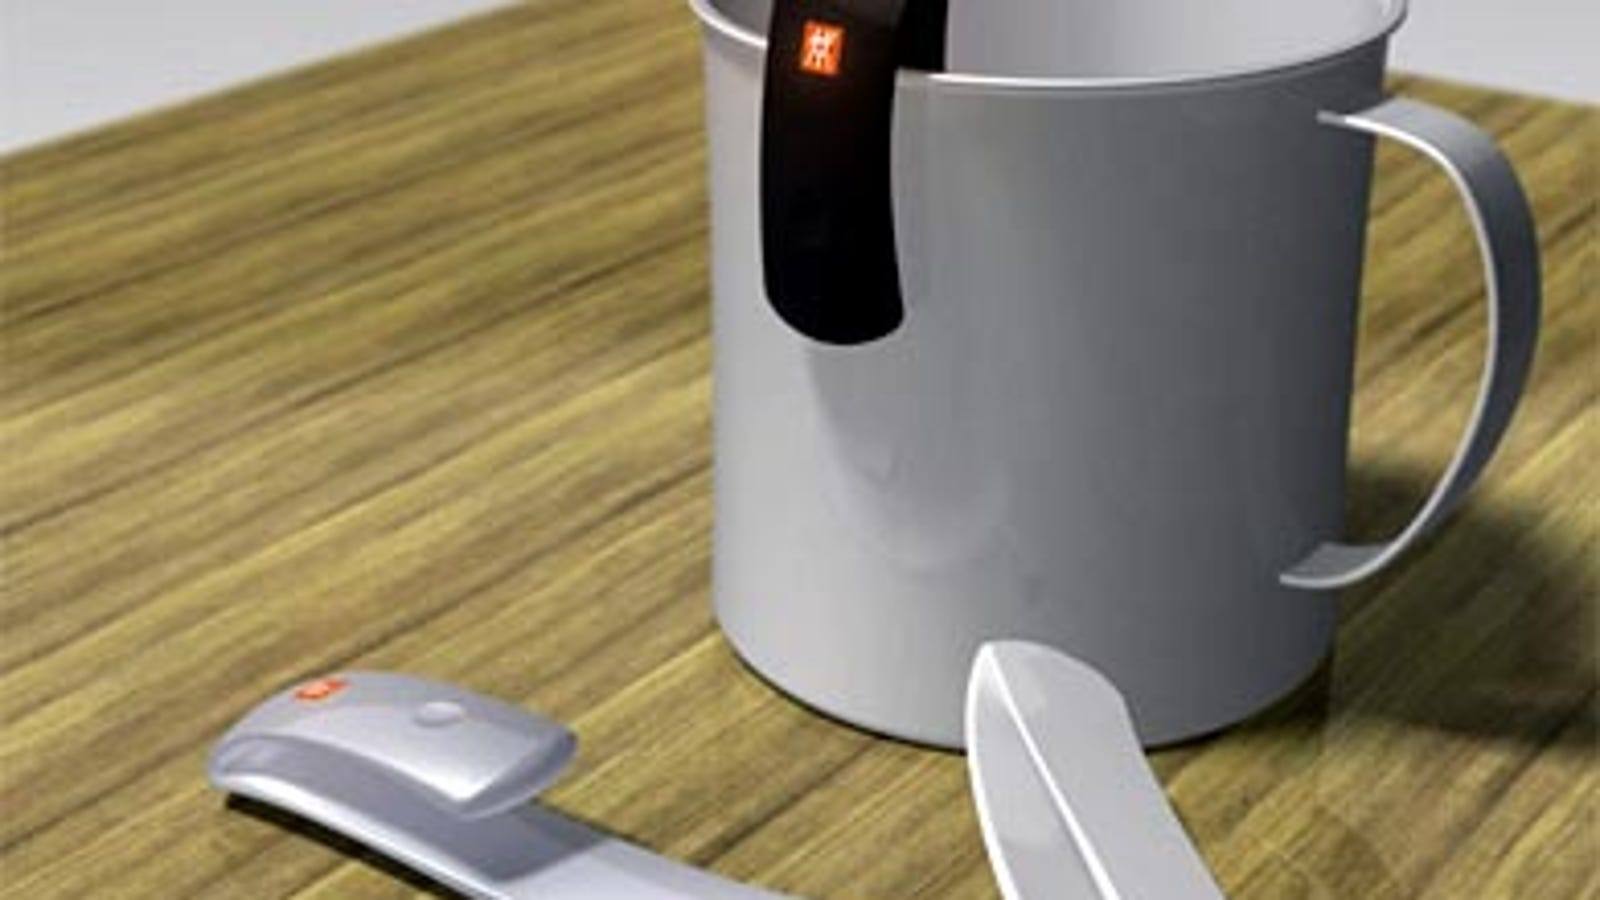 Fuel Cell Beverage Heater Keeps Your Coffee Drinkable